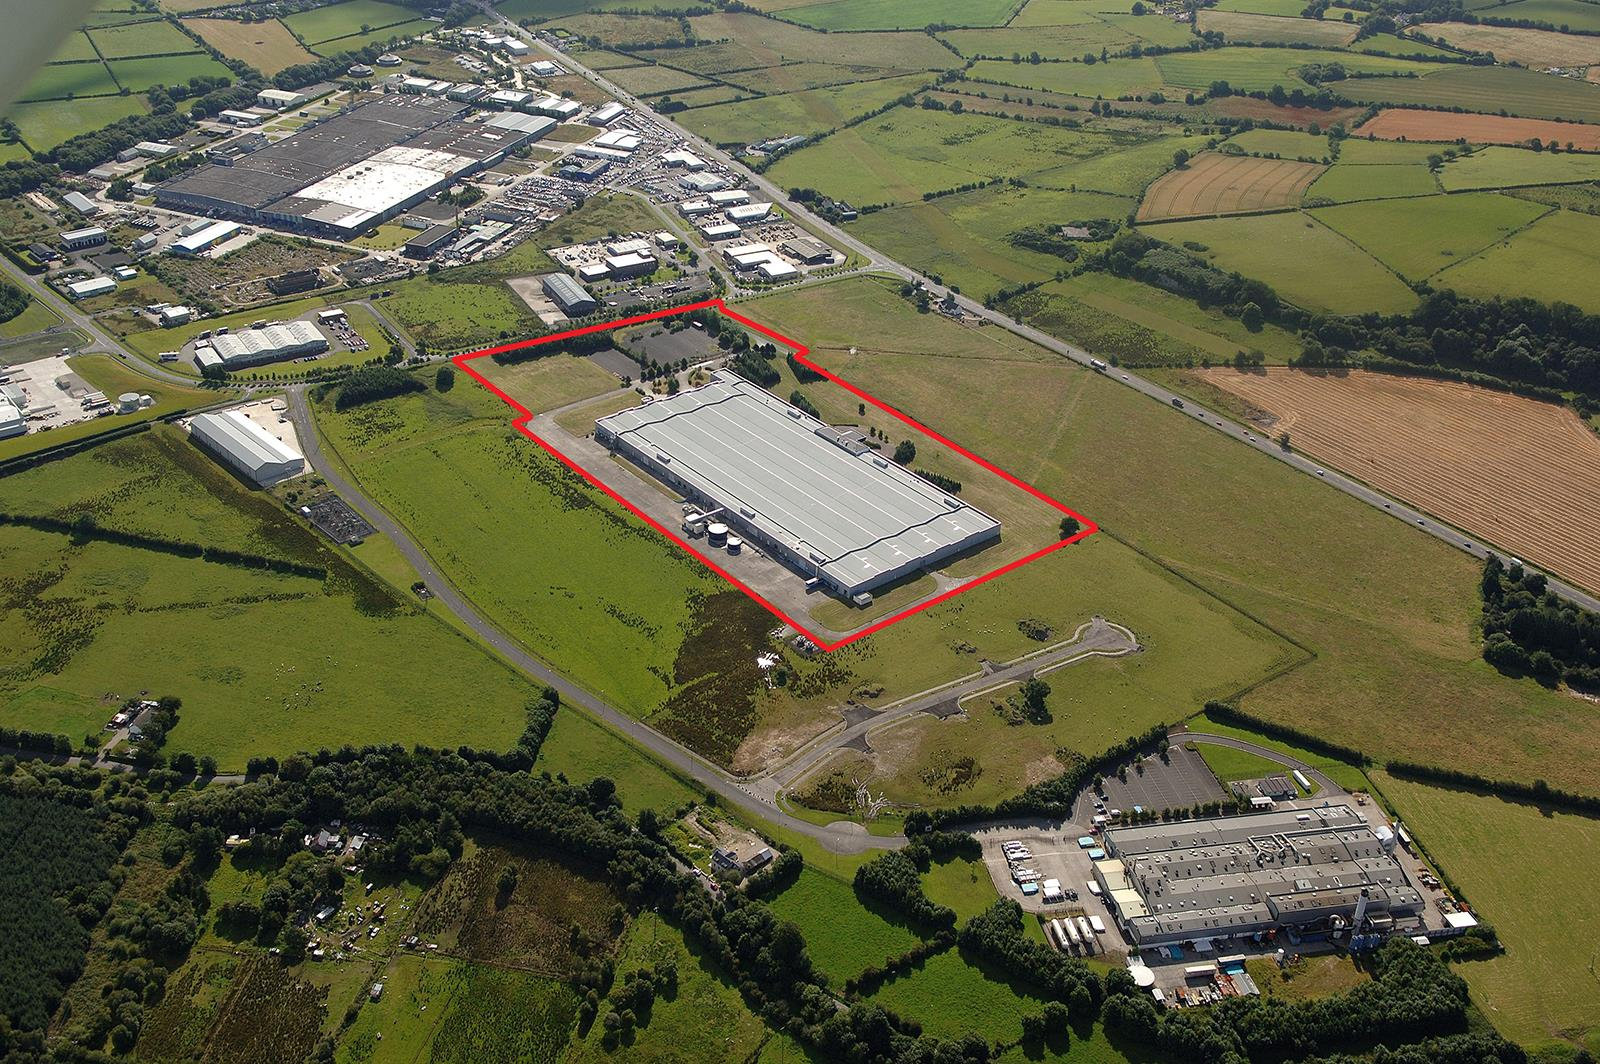 1 Fruit Of The Loom Drive , Campsie, Londonderry , County Londonderry , BT47